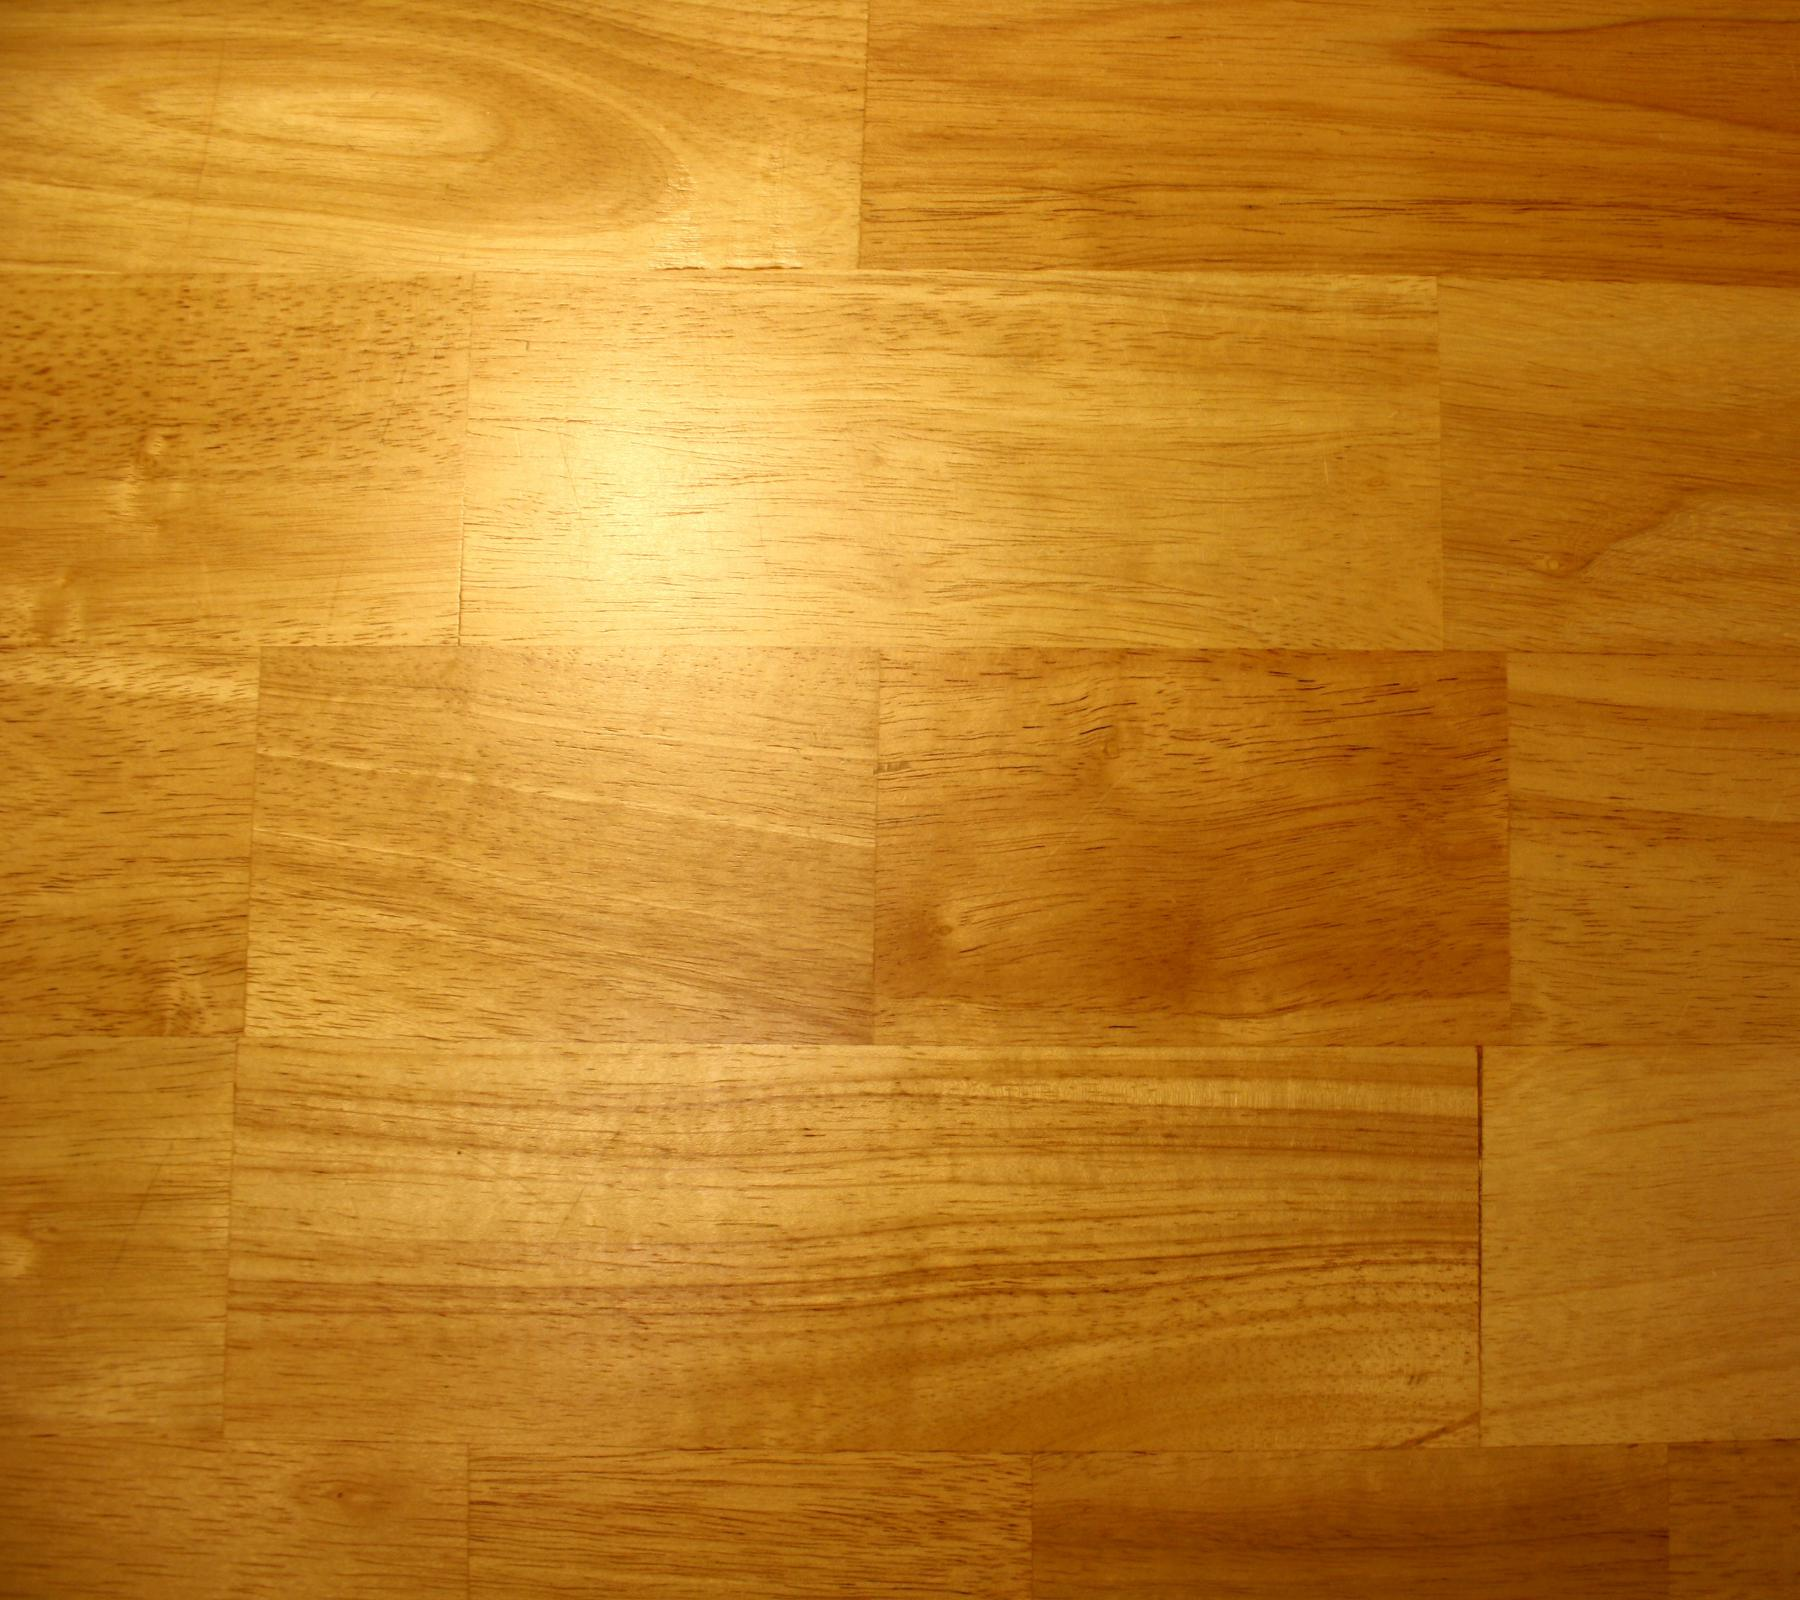 Delighful Hardwood Floors Background A And Inspiration Decorating